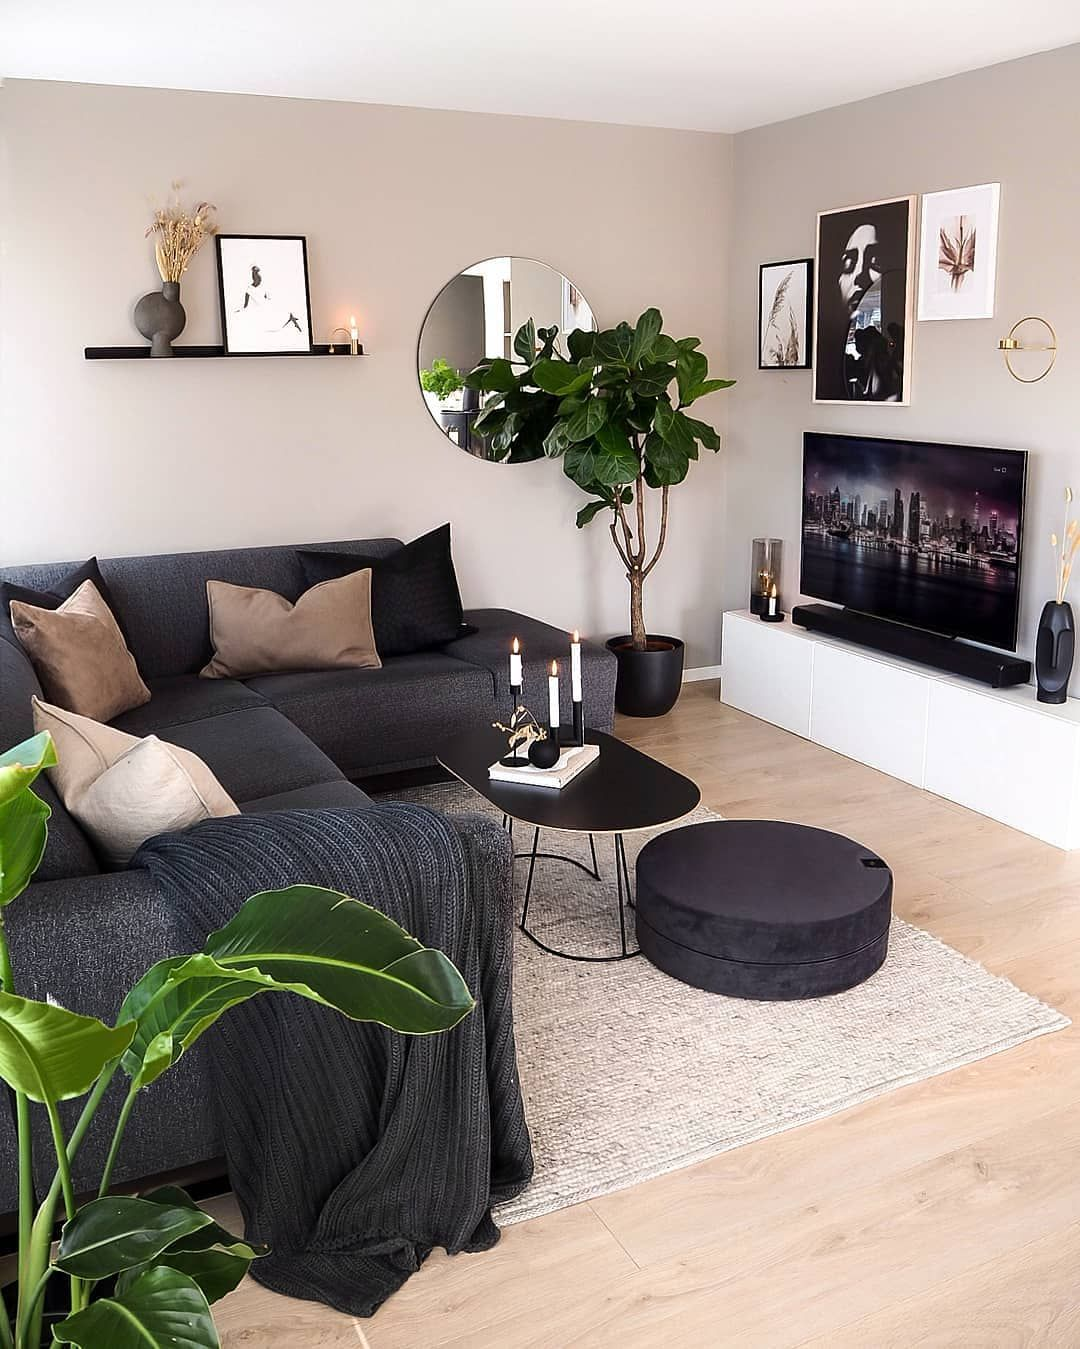 2 0 2 0 Happy New Year Everyone Hope You All Had A Nice Celebration Decor In 2020 Living Room Decor Apartment Small Living Room Decor Apartment Living Room